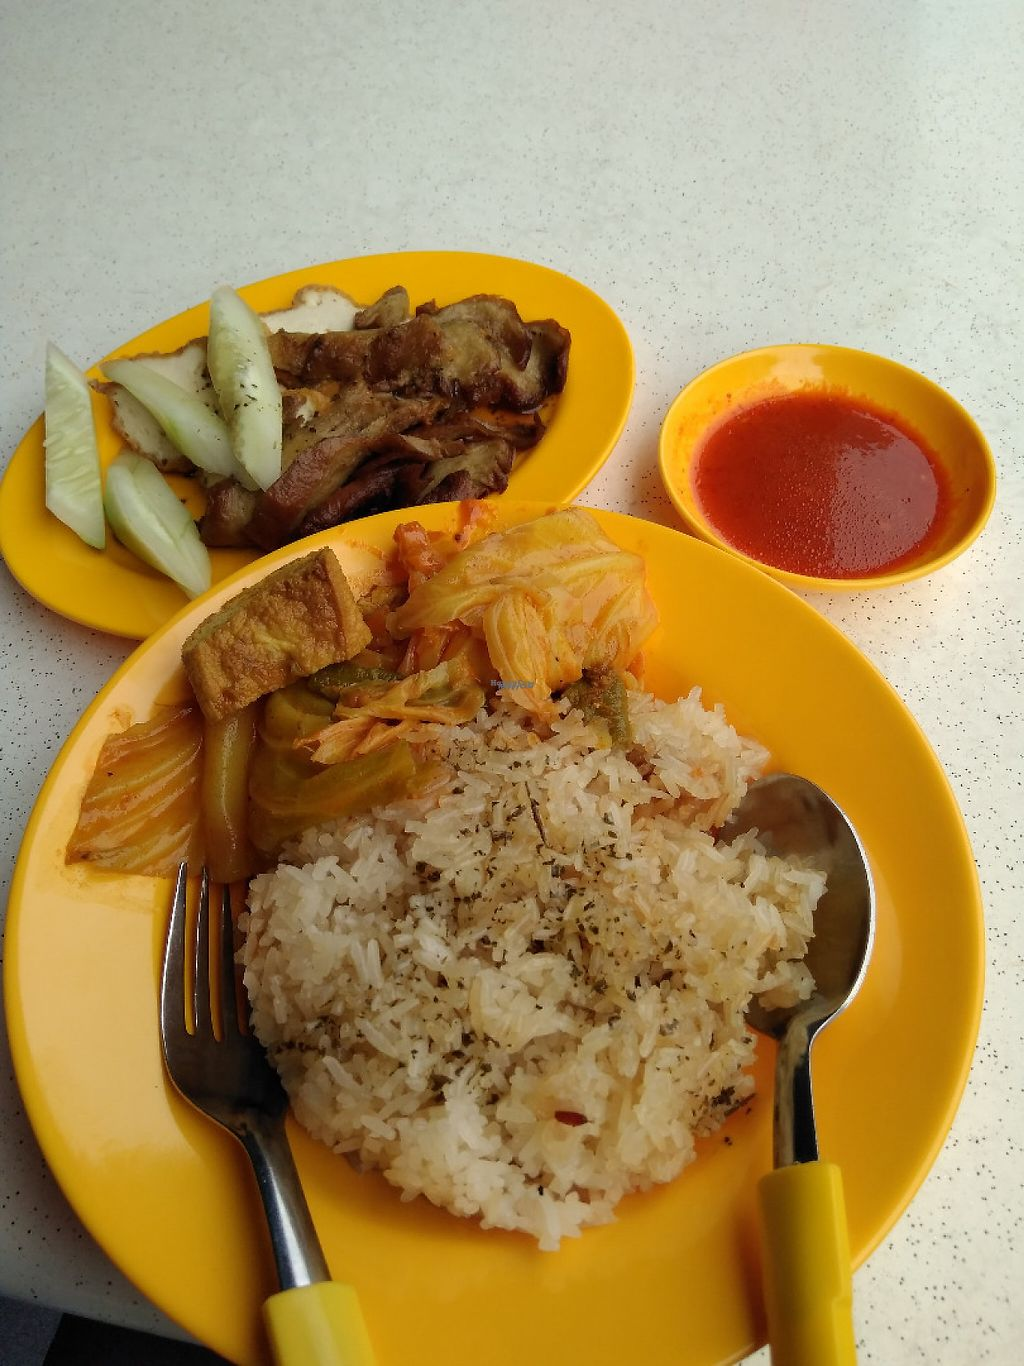 """Photo of Seng Wei Xuan Vegetarian  by <a href=""""/members/profile/RichardLee"""">RichardLee</a> <br/>Vegetarian Chicken Rice with added Curry Vegetable  <br/> January 12, 2017  - <a href='/contact/abuse/image/83251/211254'>Report</a>"""